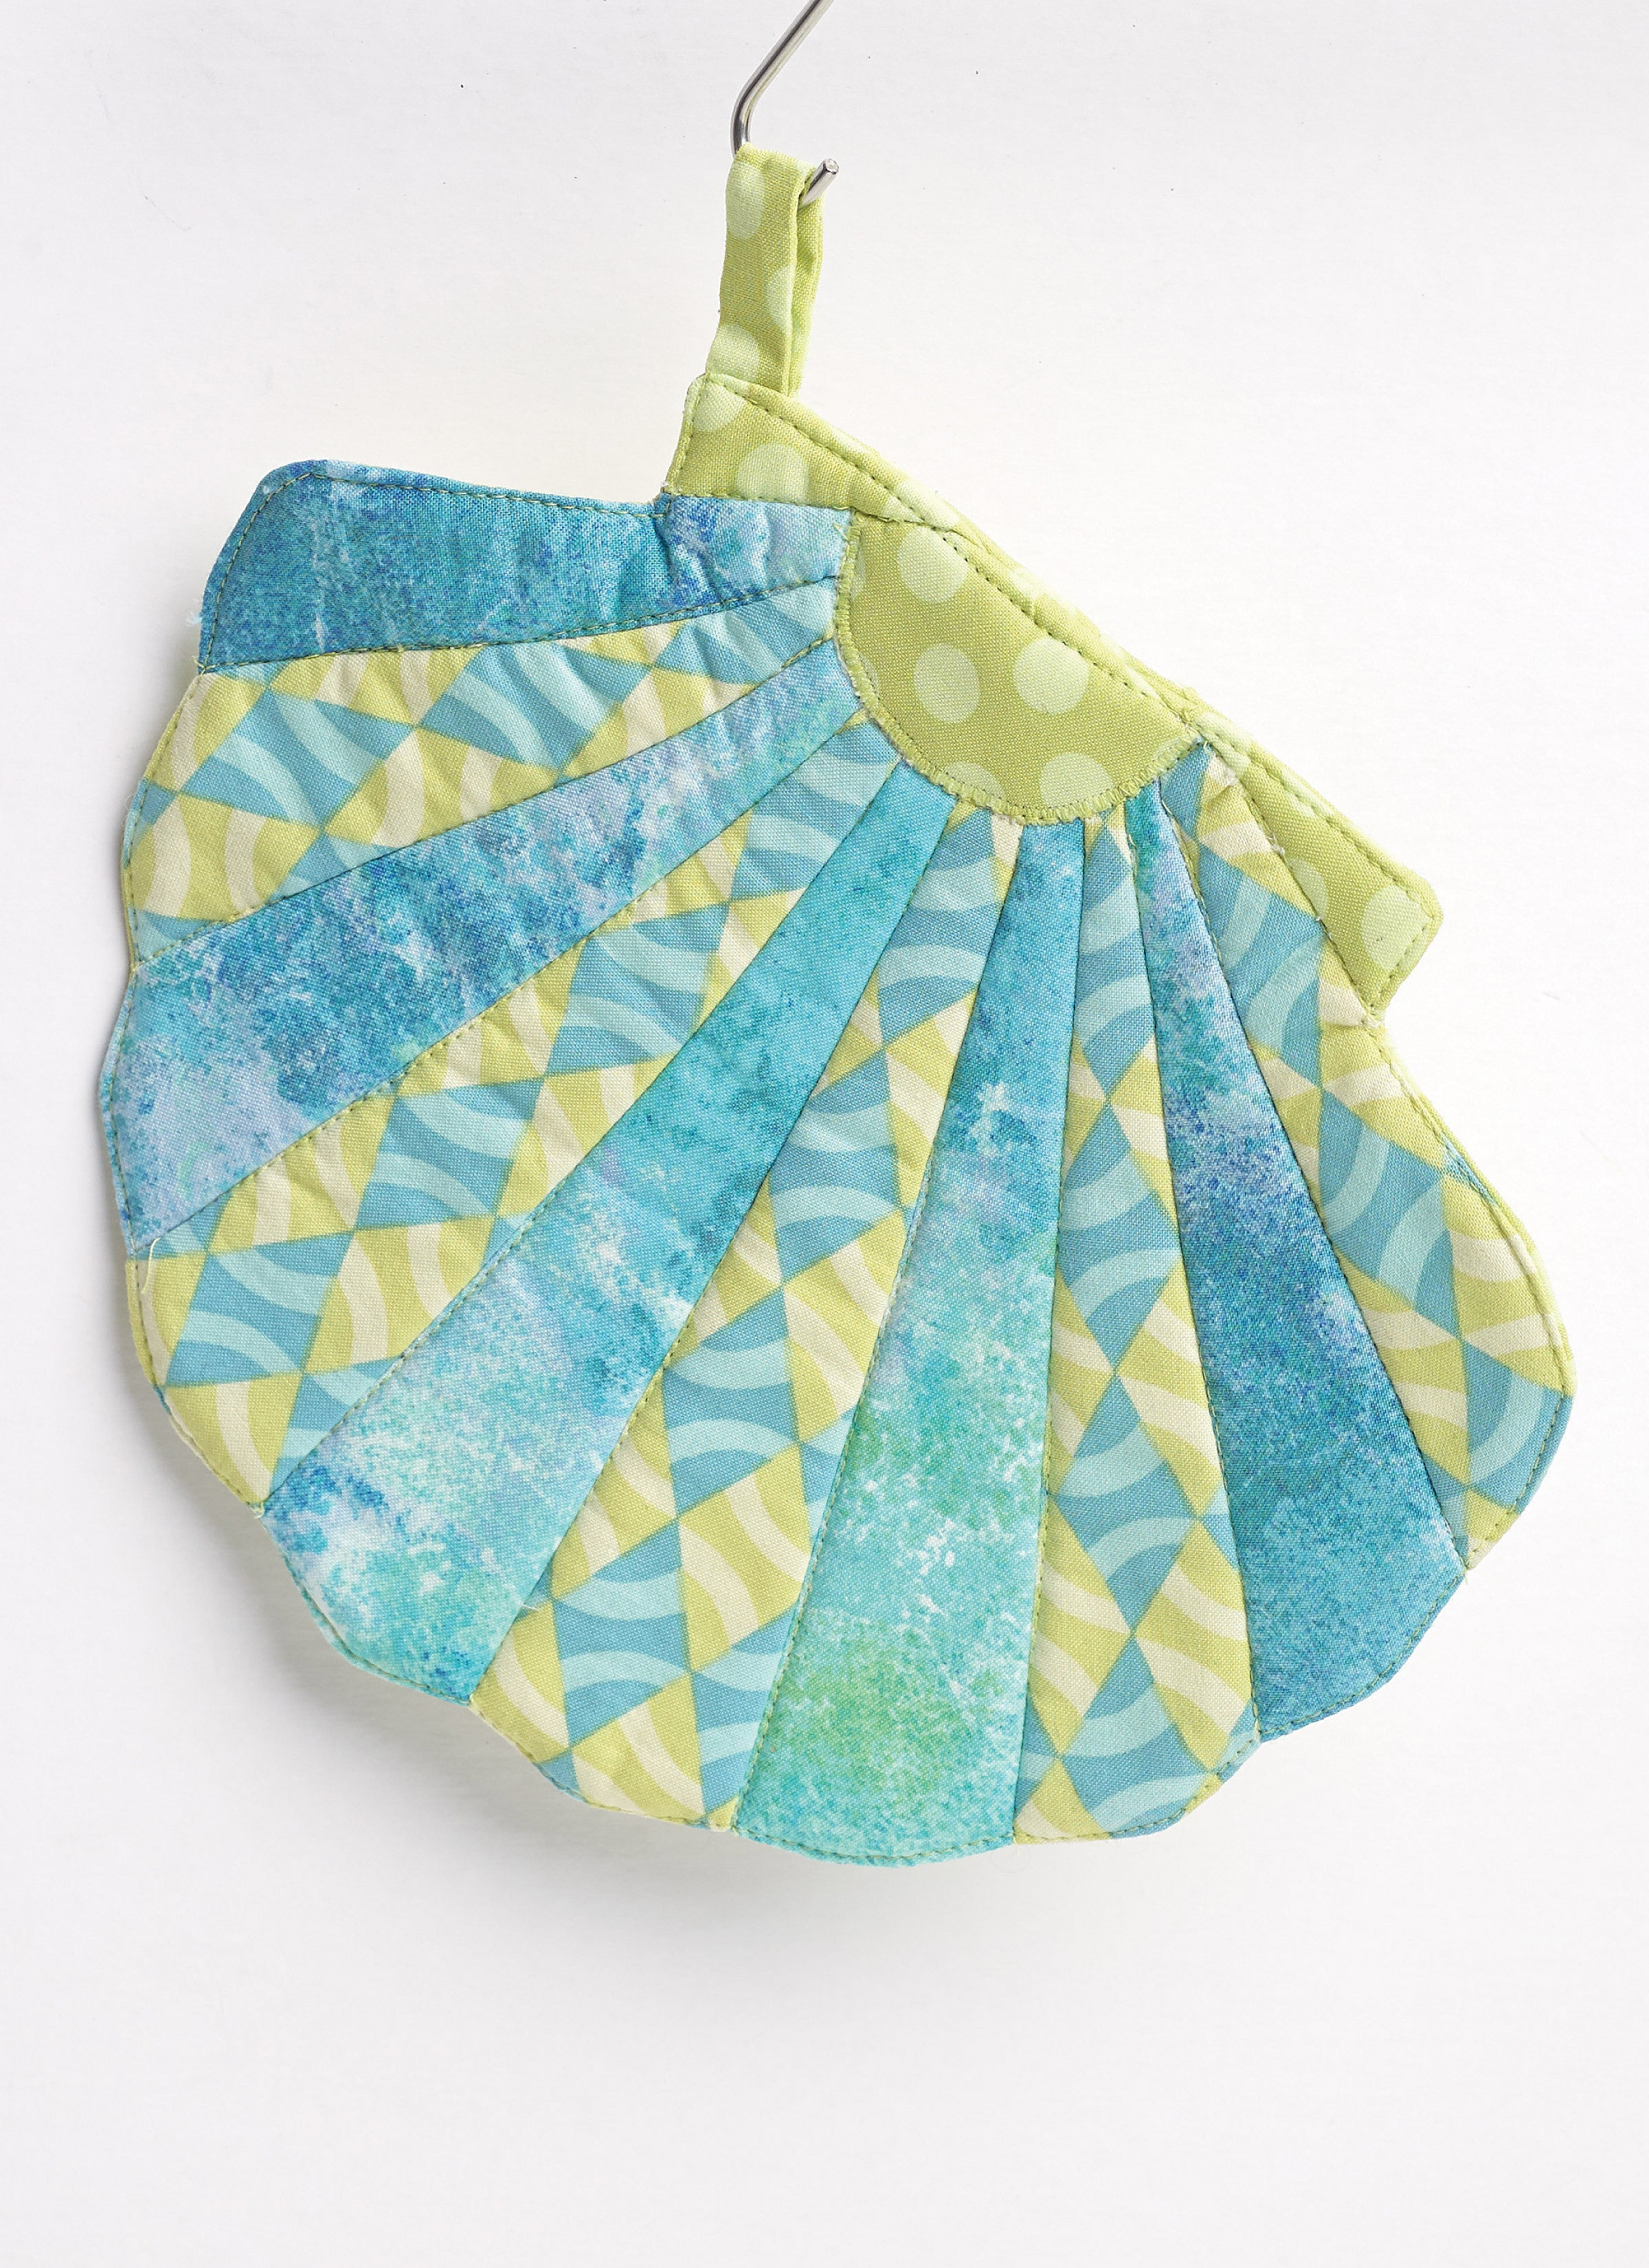 Kwik Sew K0236 Seashell-themed Pot Holders